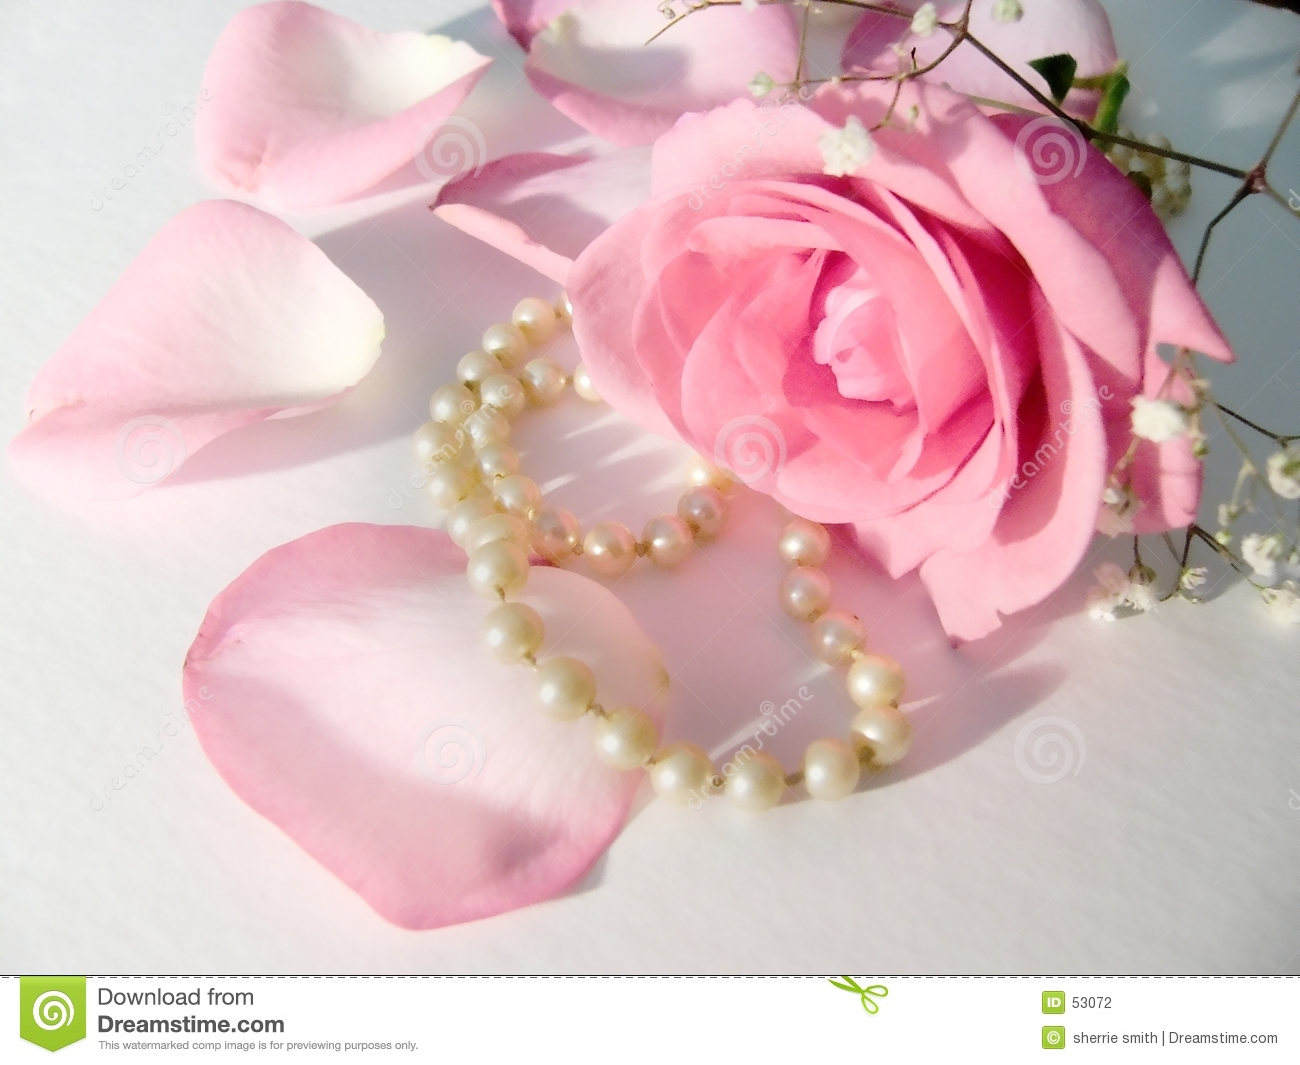 roses and pearls - photo #43